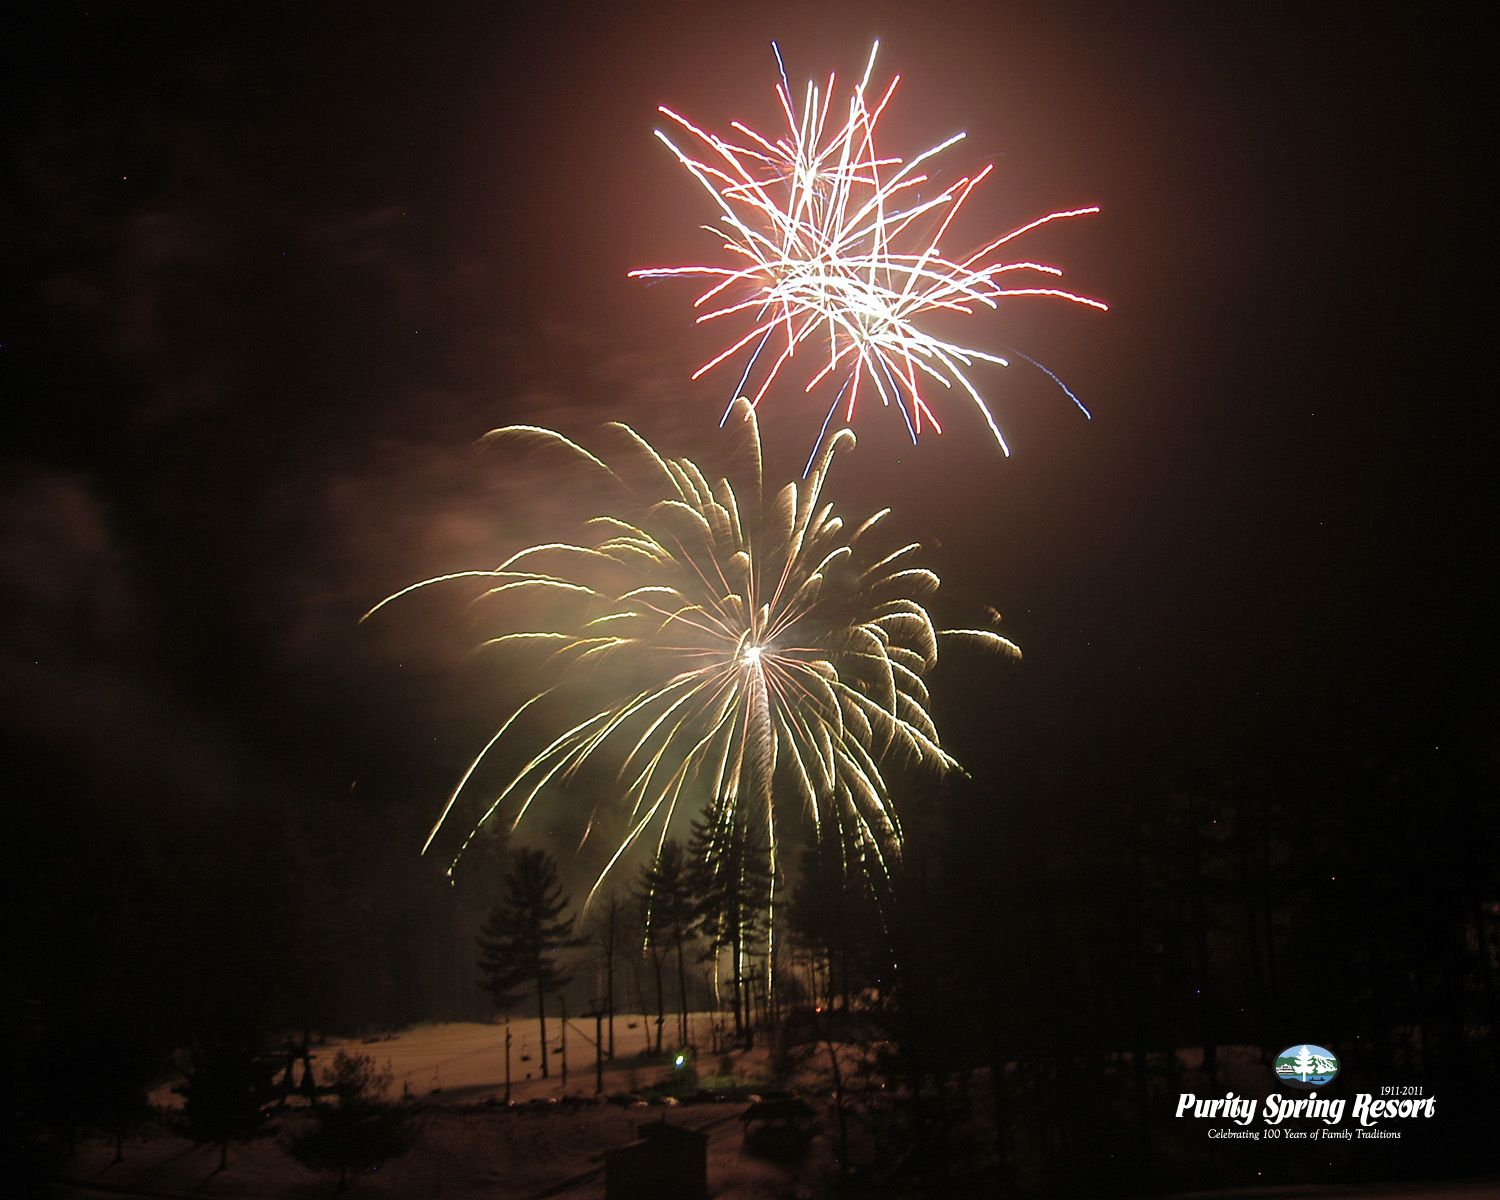 New Year's Eve at Purity Spring Resort offers everything ...